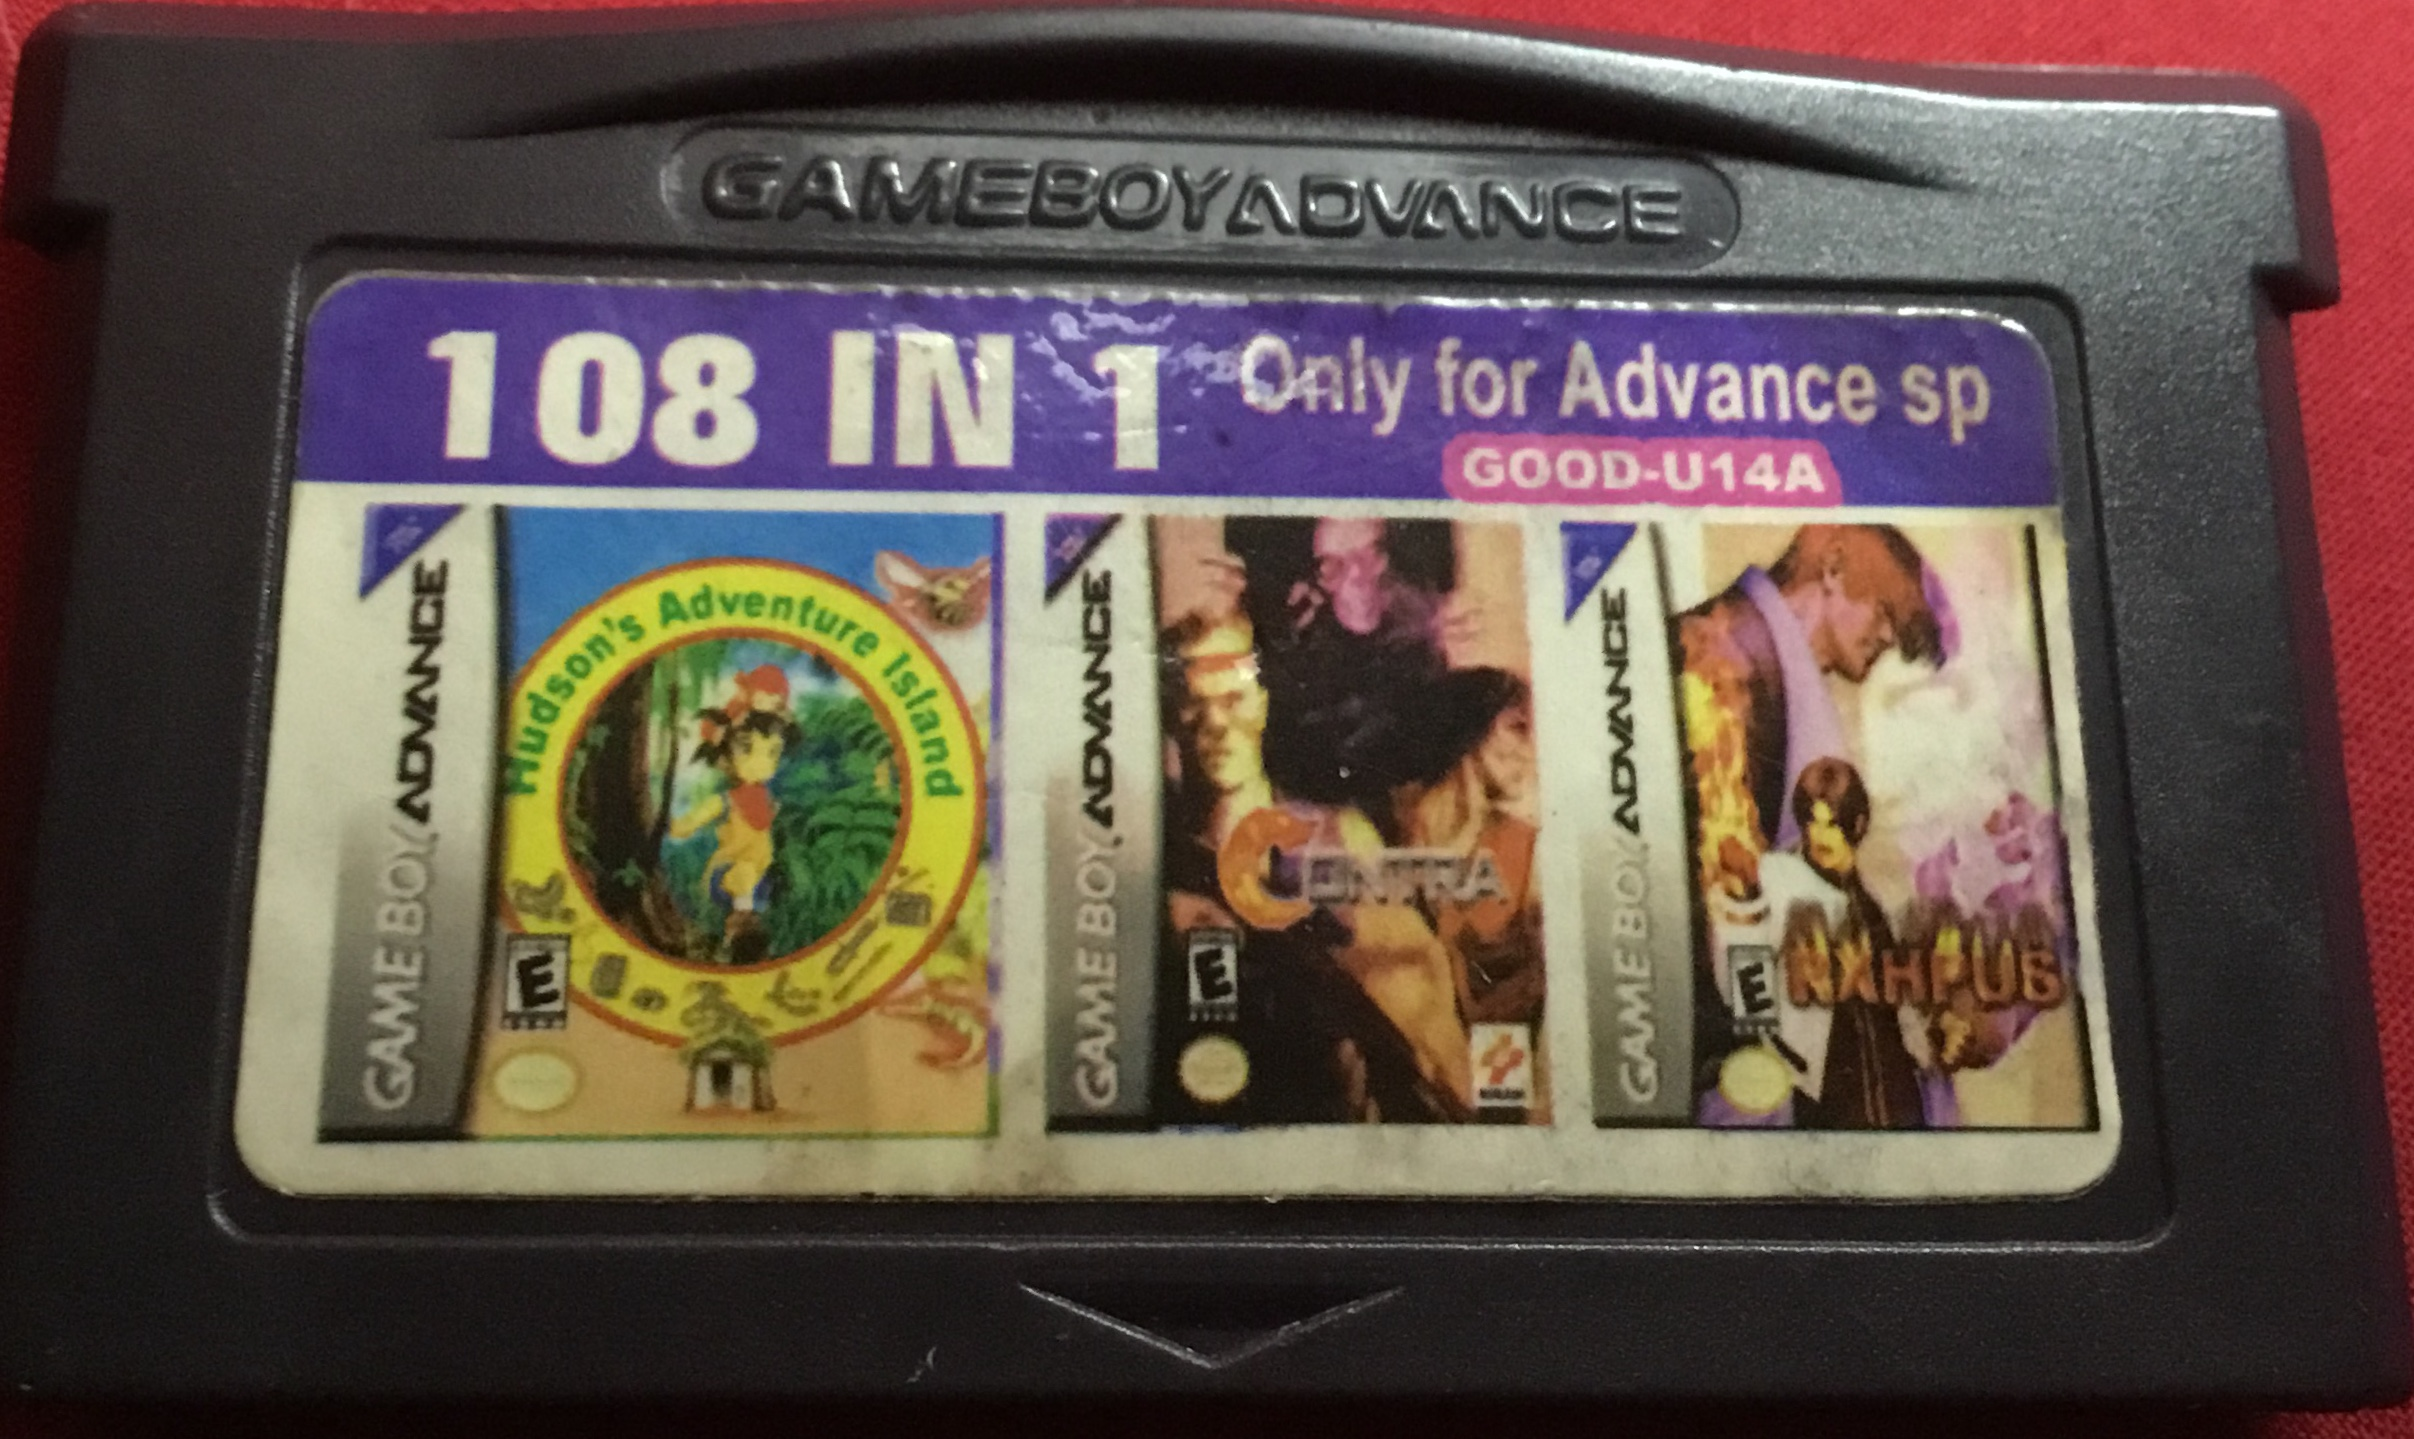 108 in 1 Gameboy Advanced GOOD-U14A